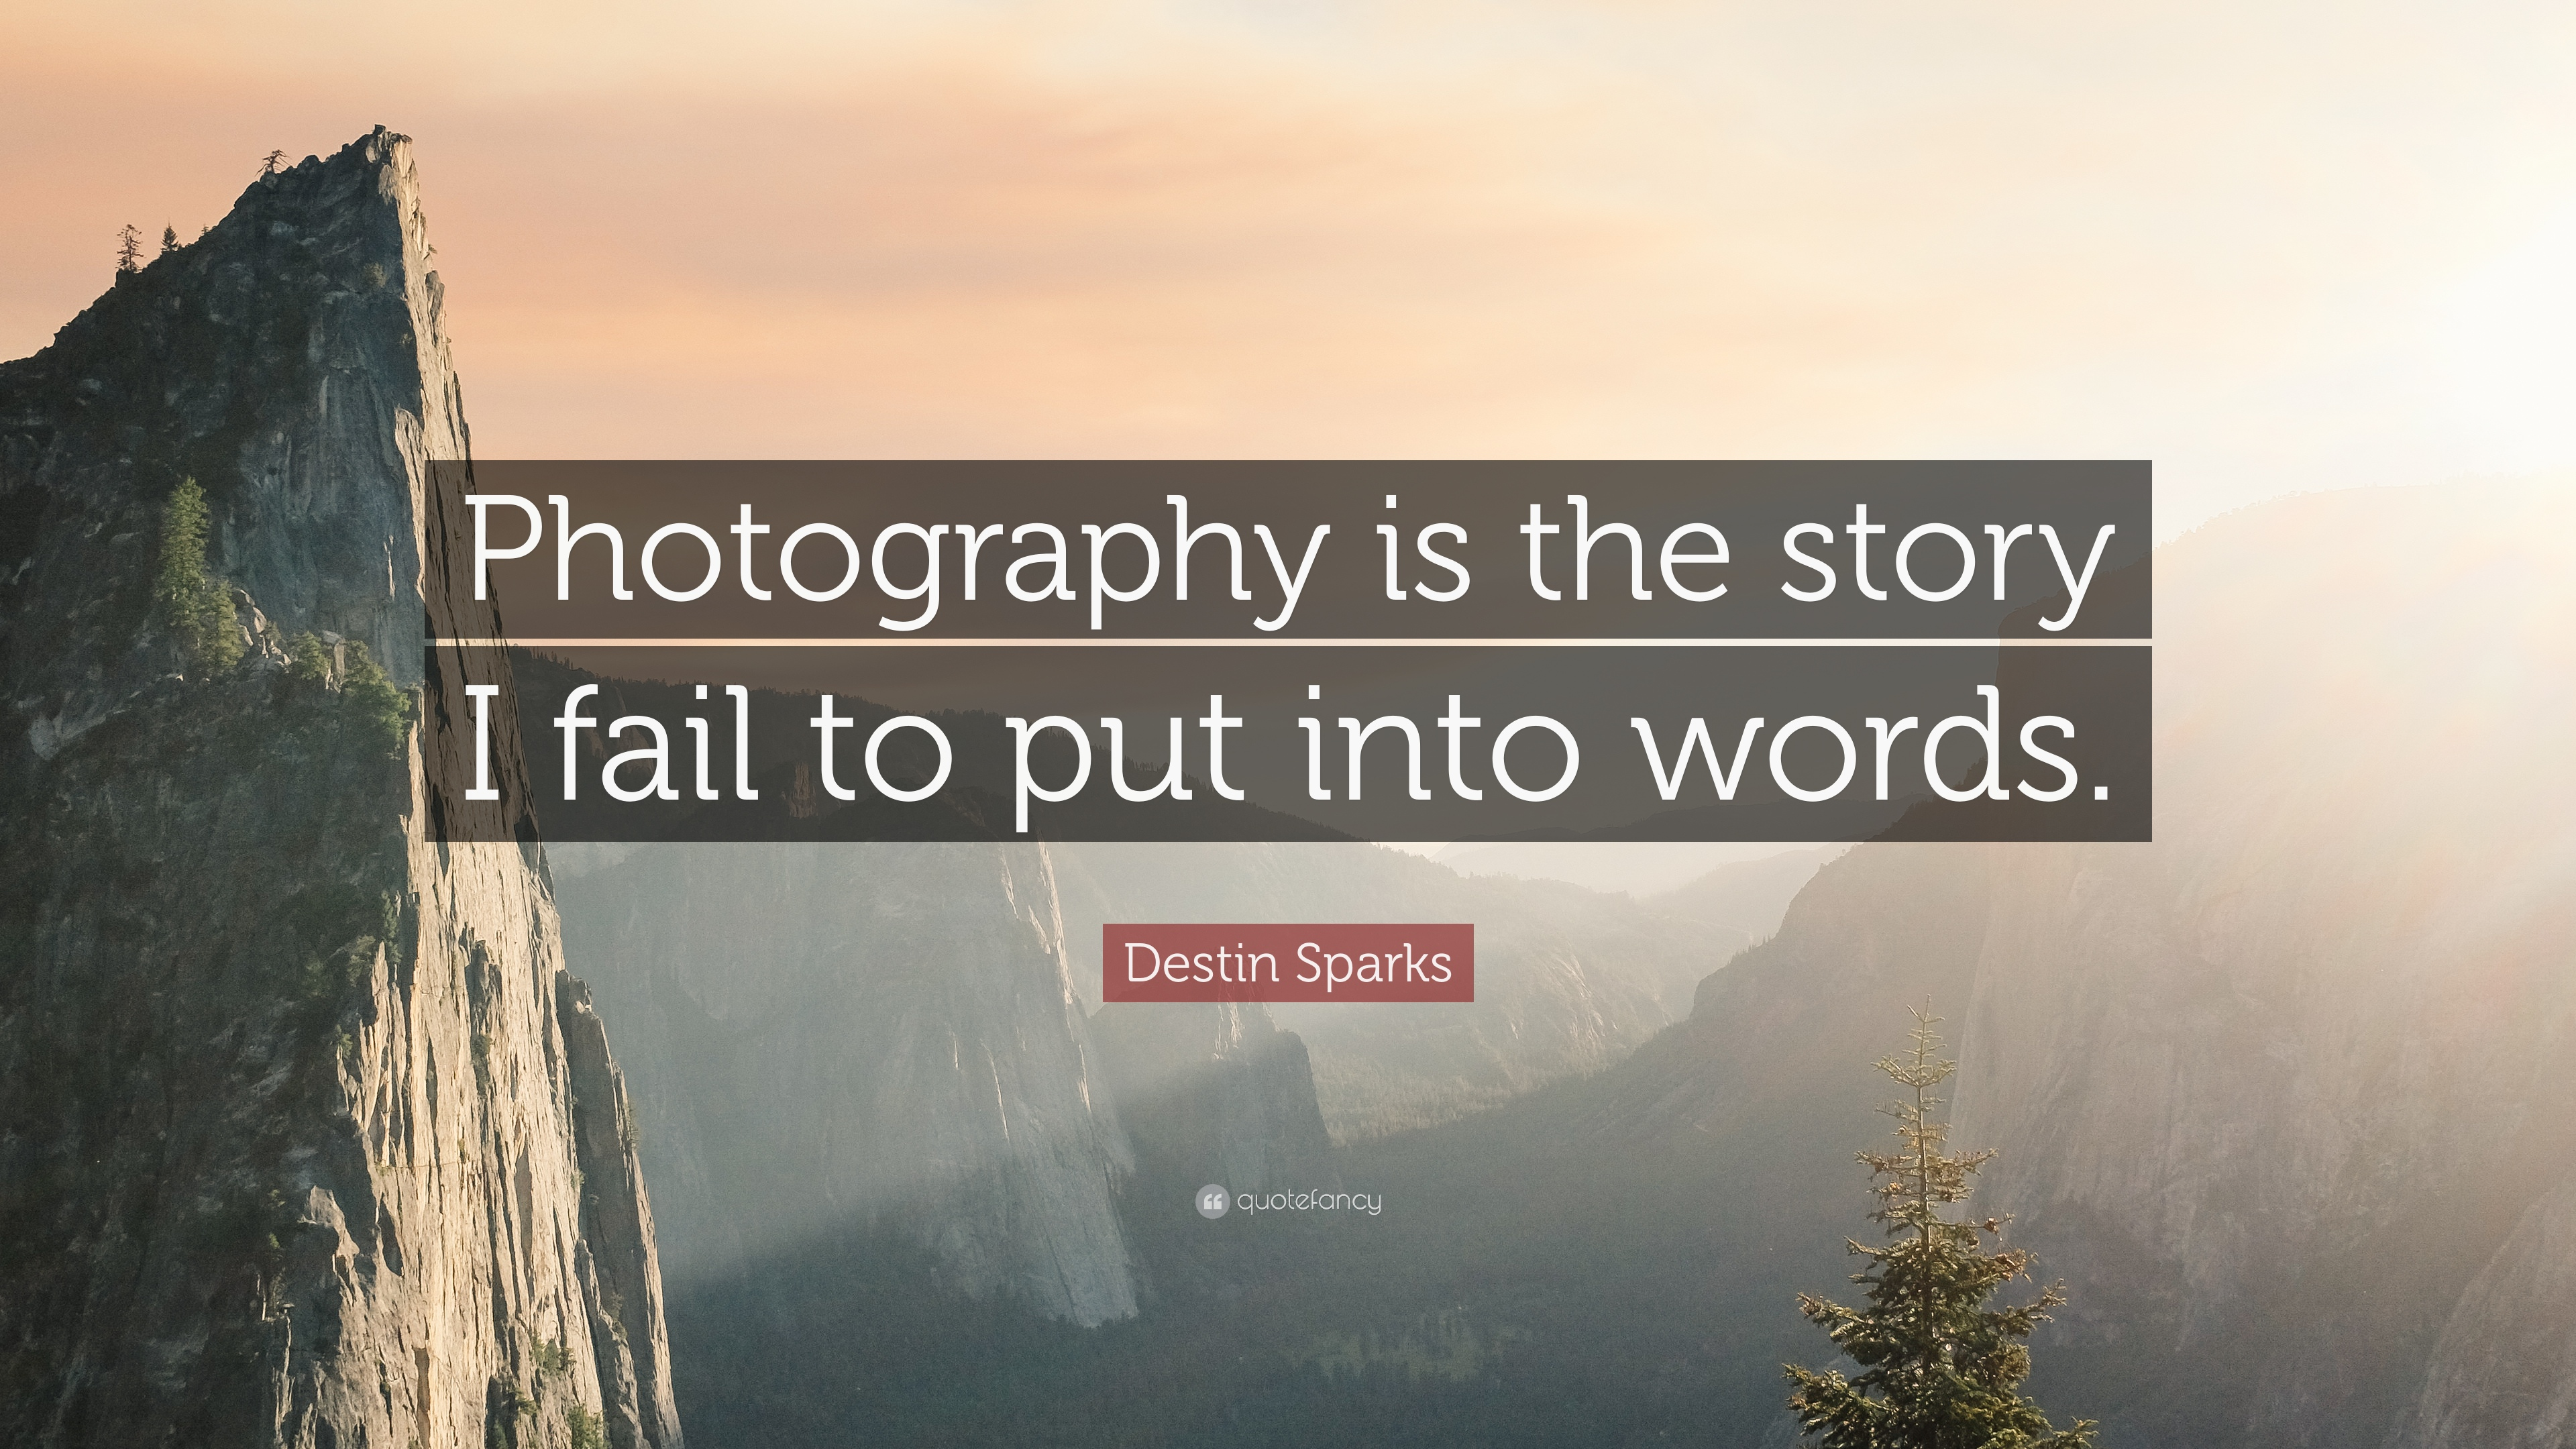 Photography Quotes Brilliant Photography Quotes 22 Wallpapers  Quotefancy